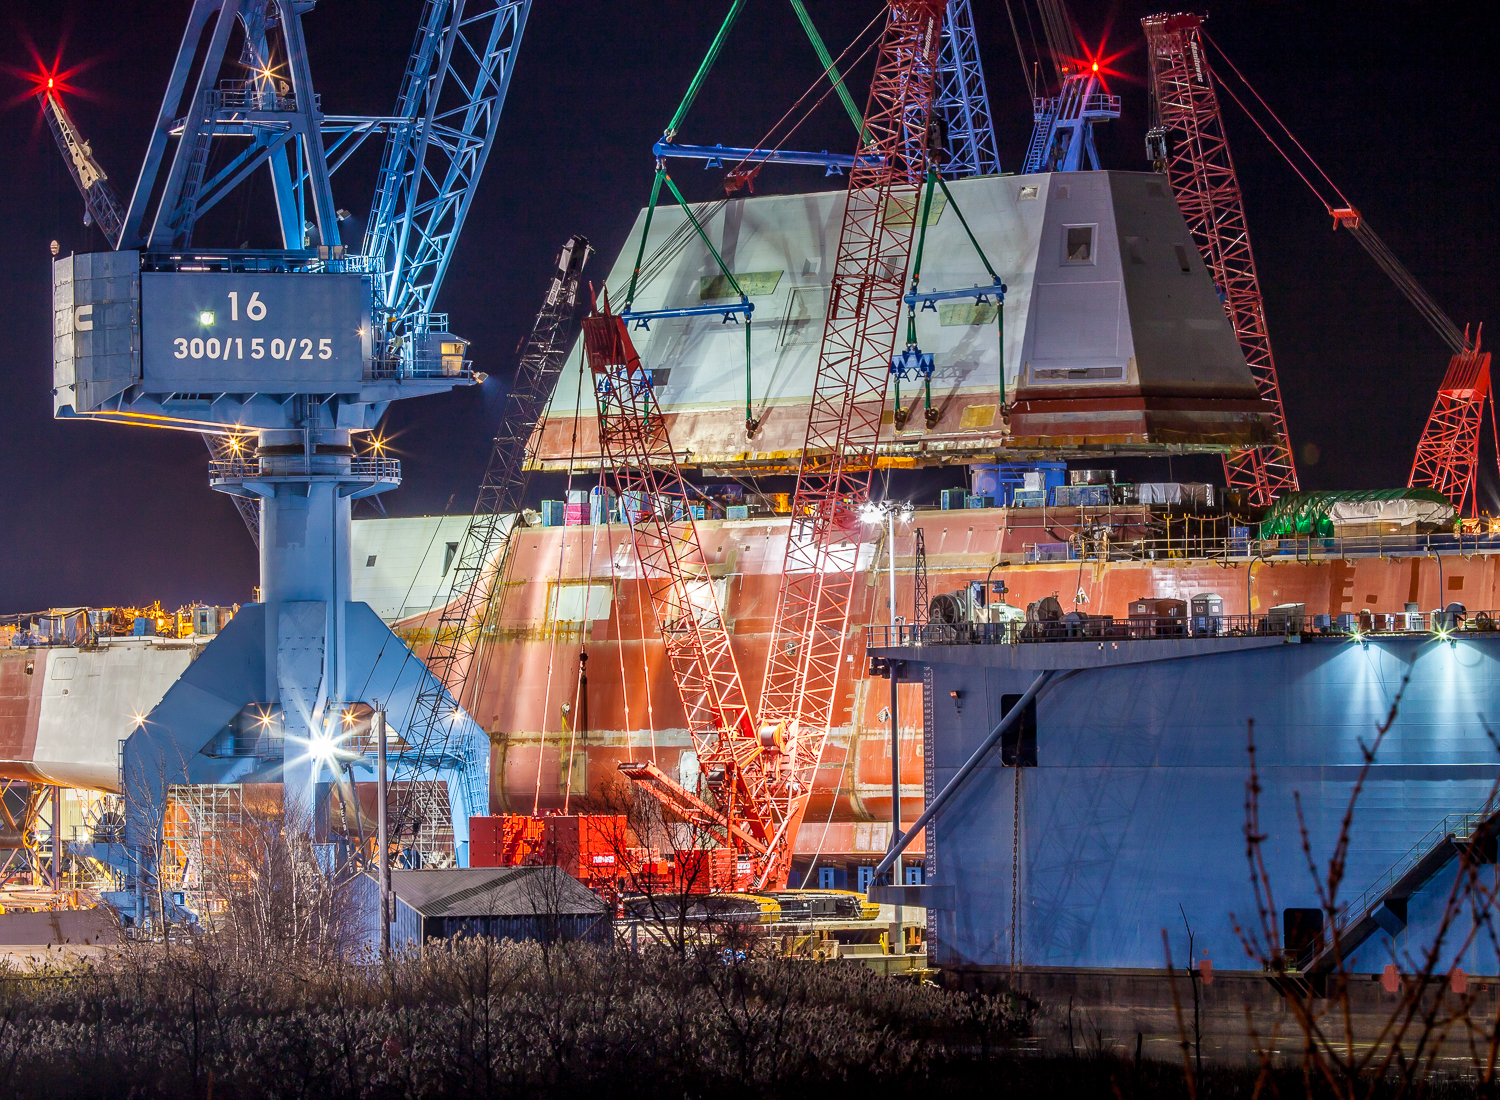 This is a three+ hour time lapse video of the composite deckhouse being lifted onto a brand new Zumwalt destroyer at Bath Iron Works in Bath, Maine.